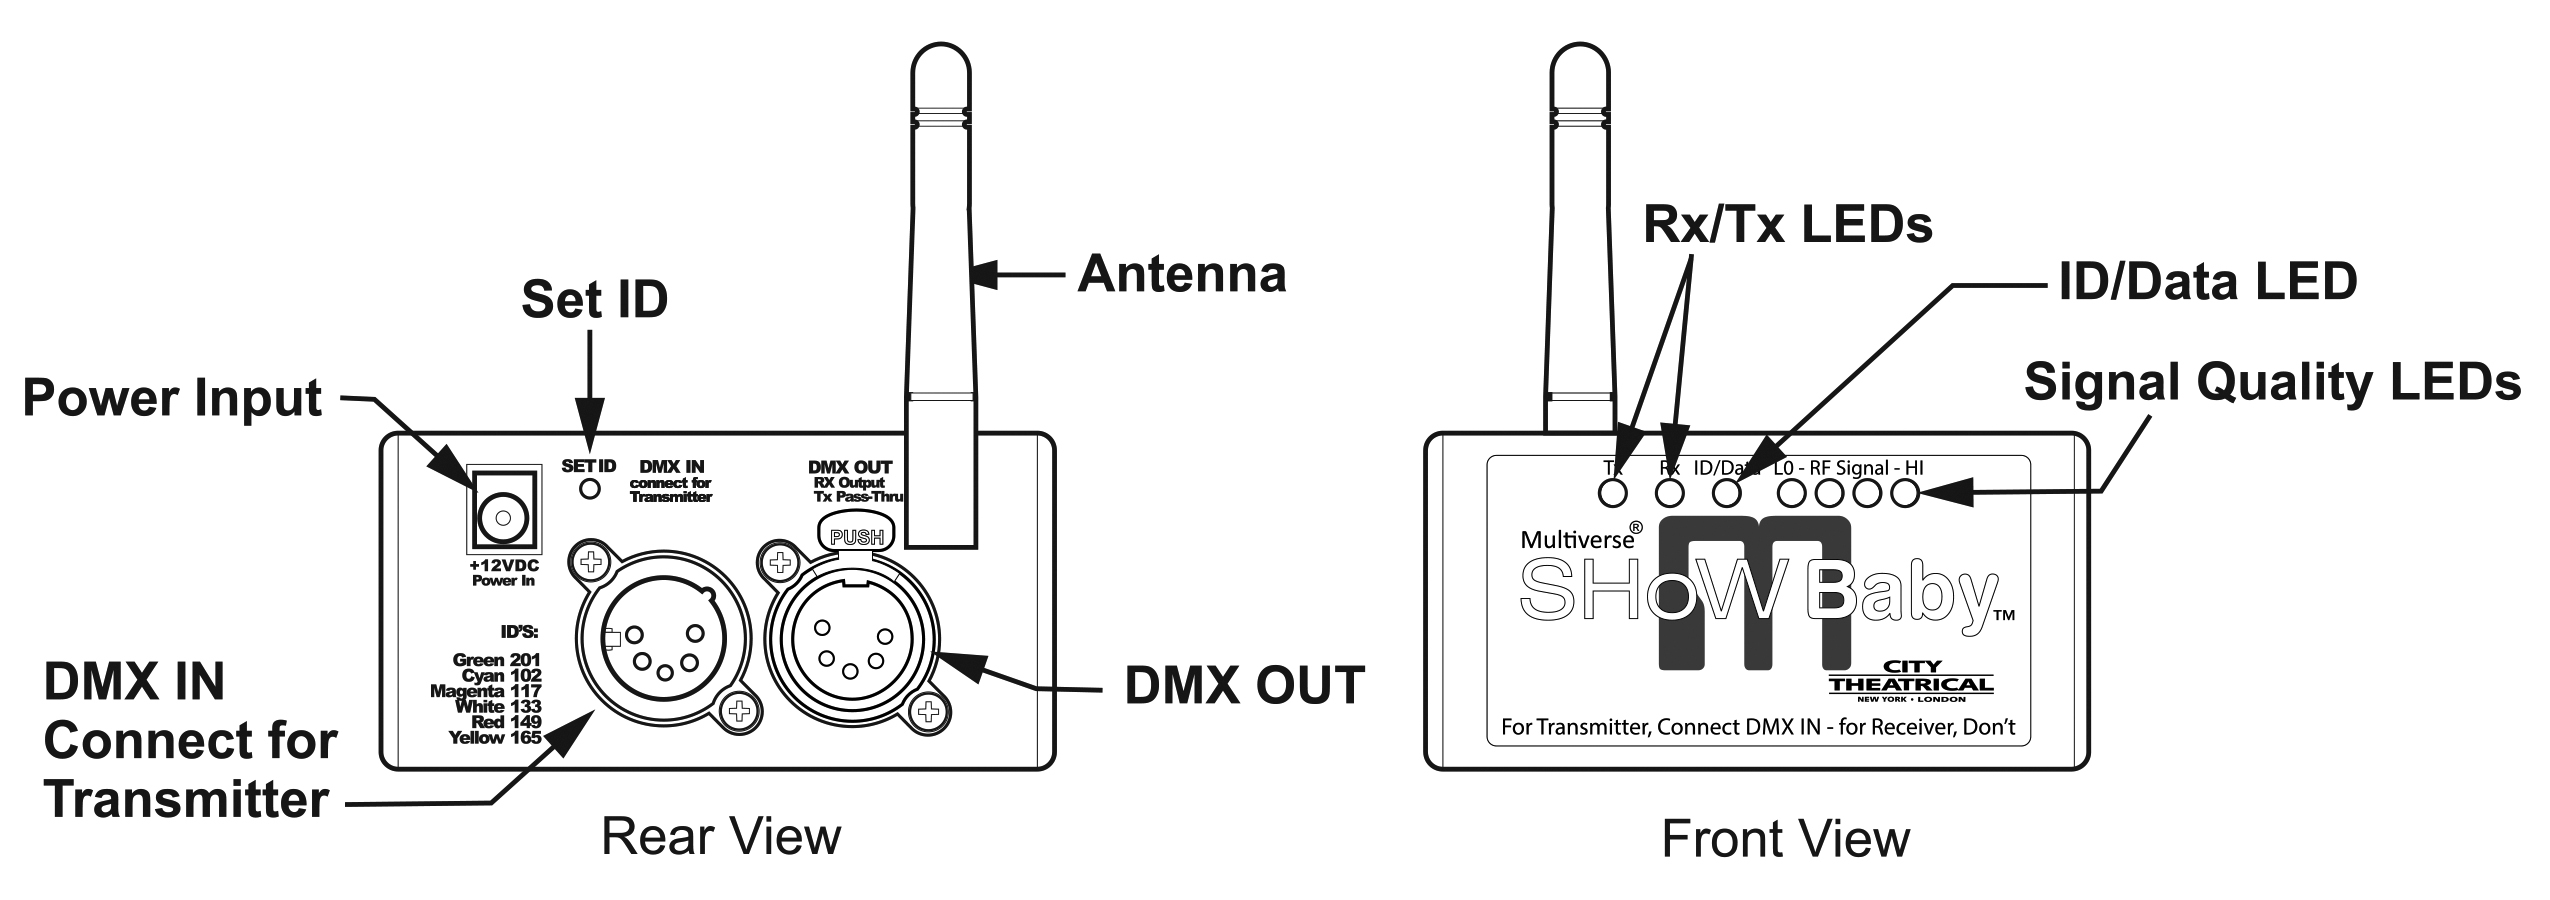 And The Antenna And The Transmitter And The Two Points Are In One Line